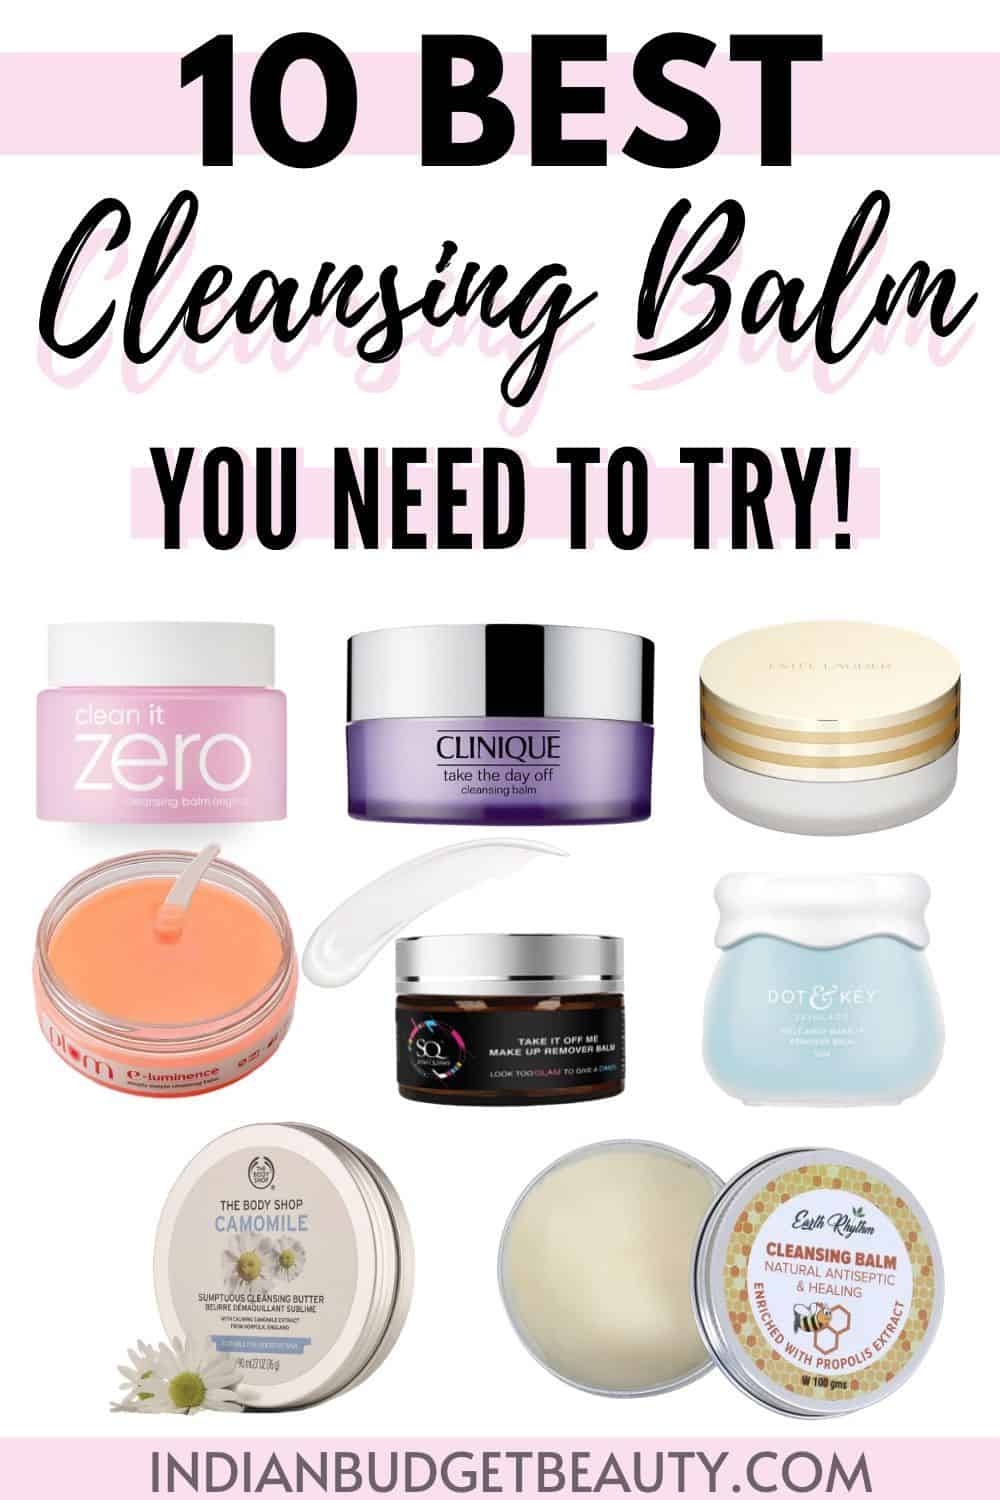 10 Best Cleansing Balm in India |  Best cleansing balm you need to try